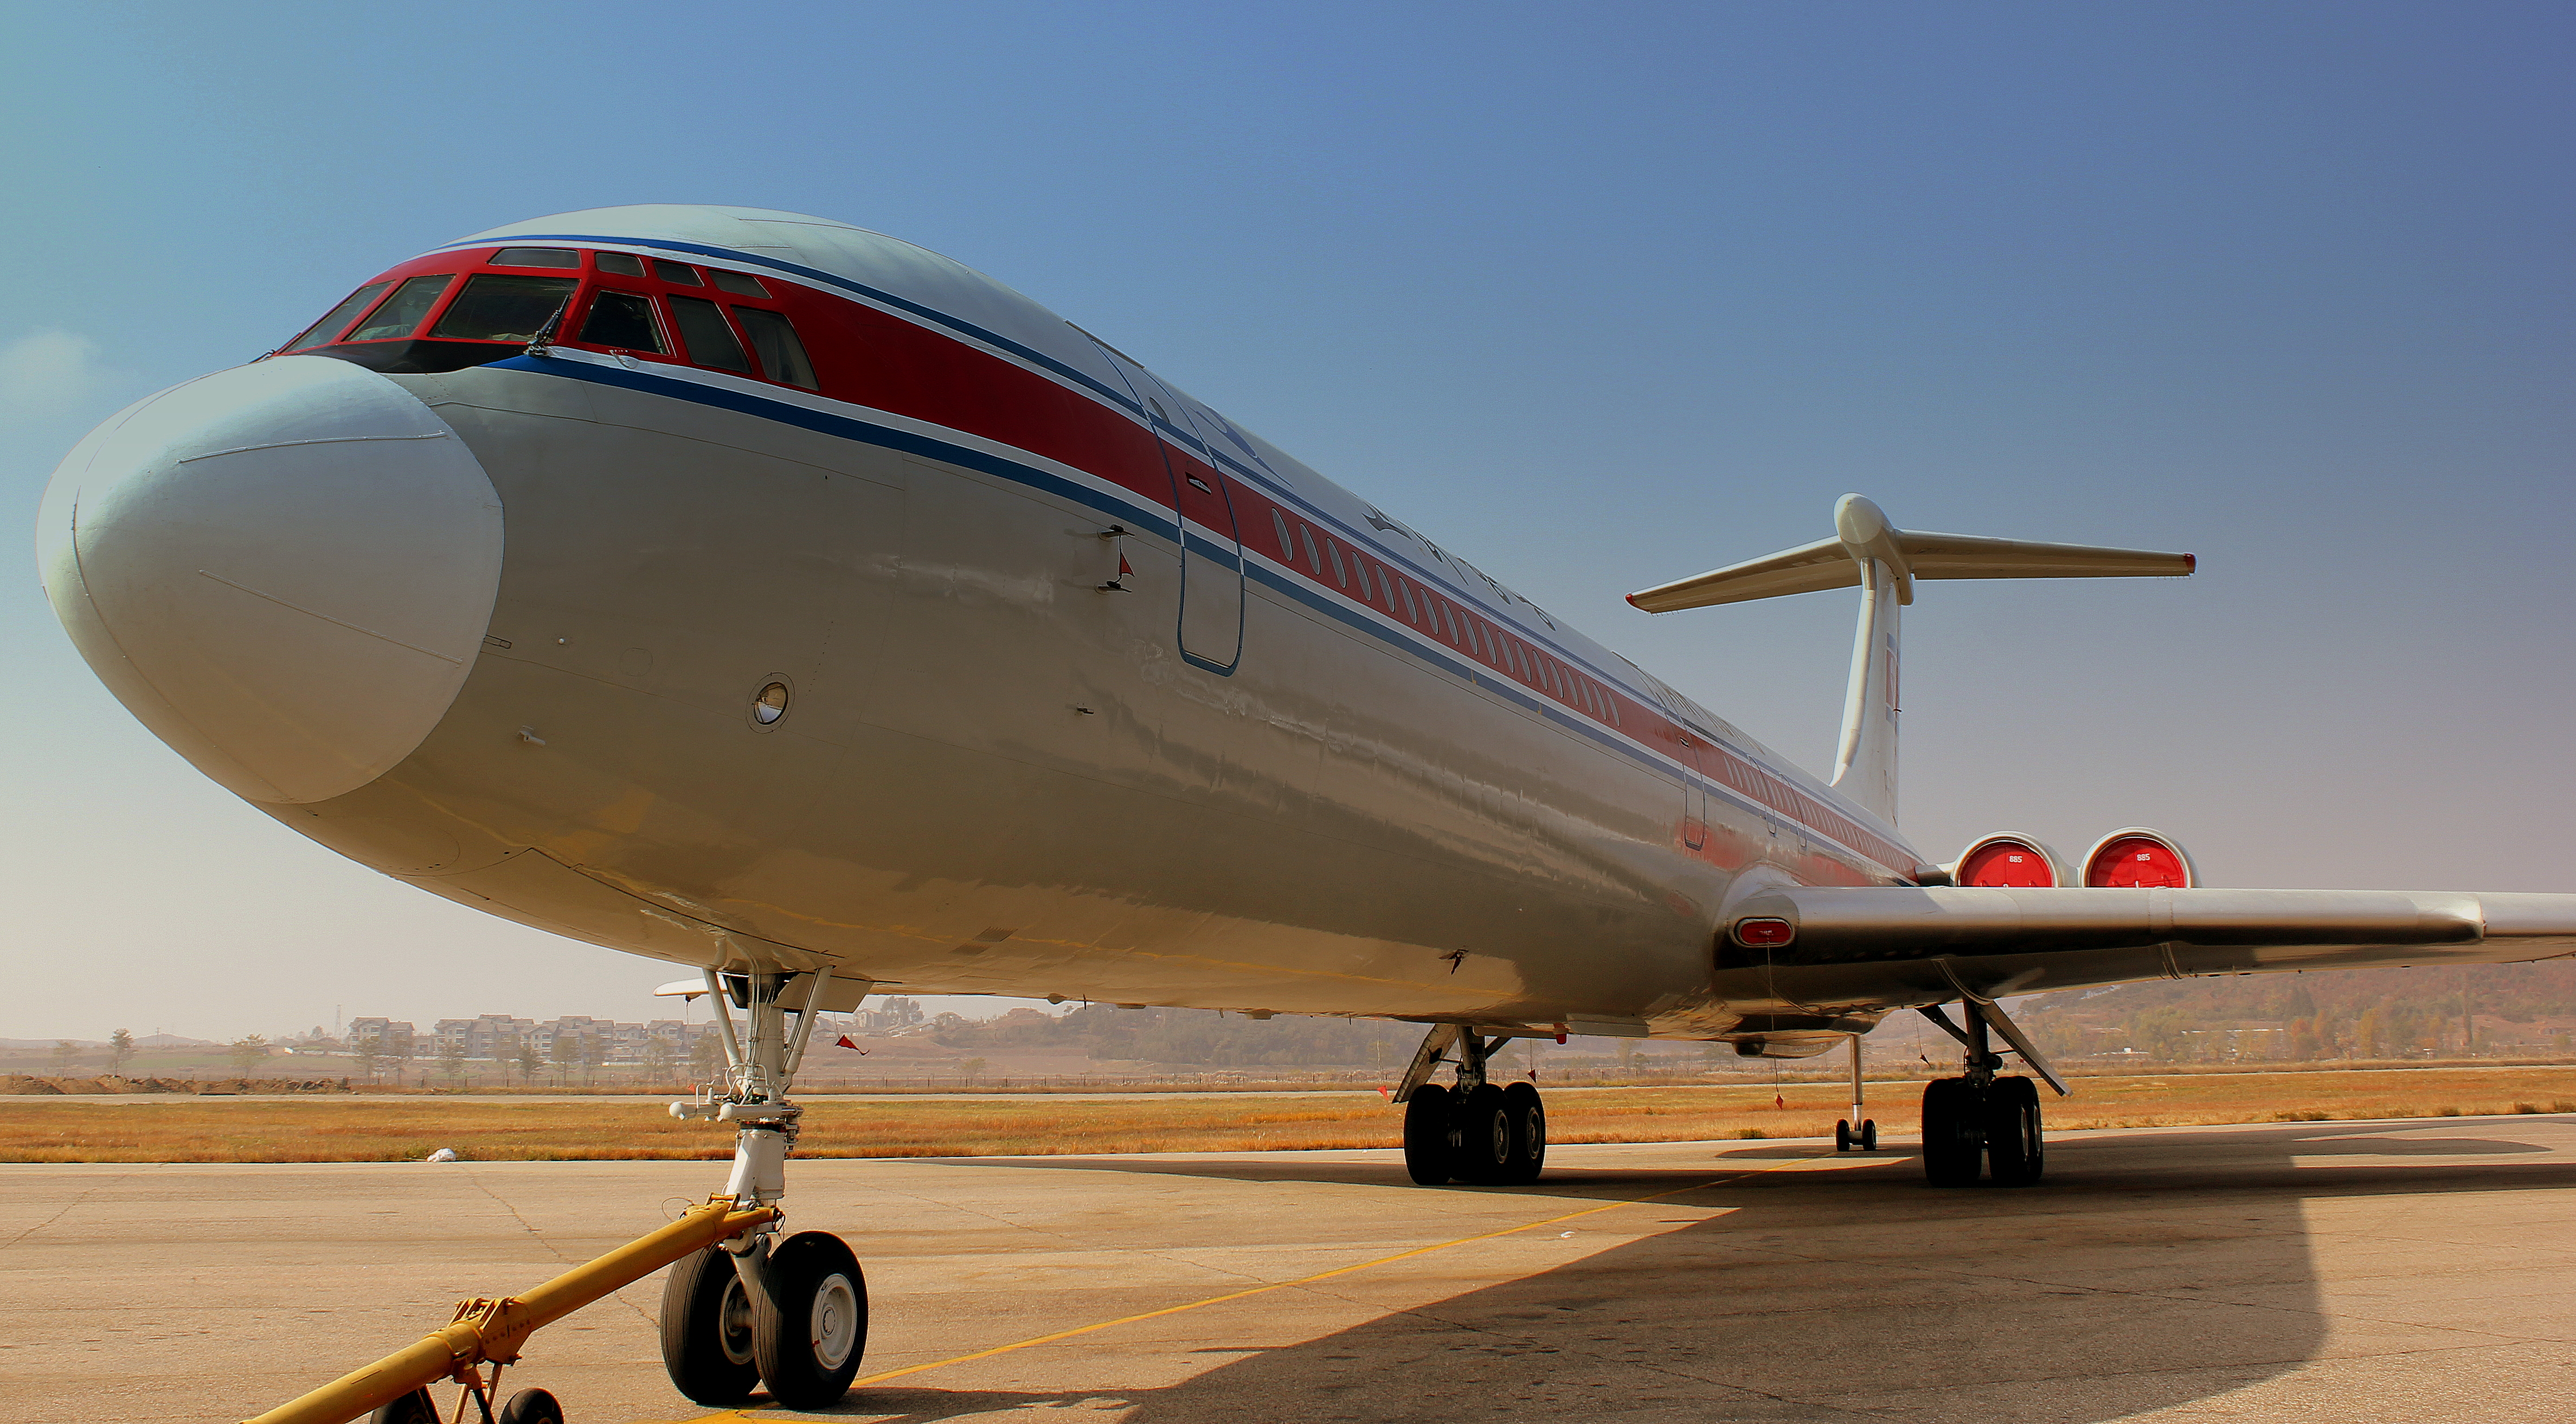 AIR KORYO IL62M P885 AT PYONGYANG SUNAN AIRPORT DPRK NORTH KOREA OCT 2012 (8640210643)